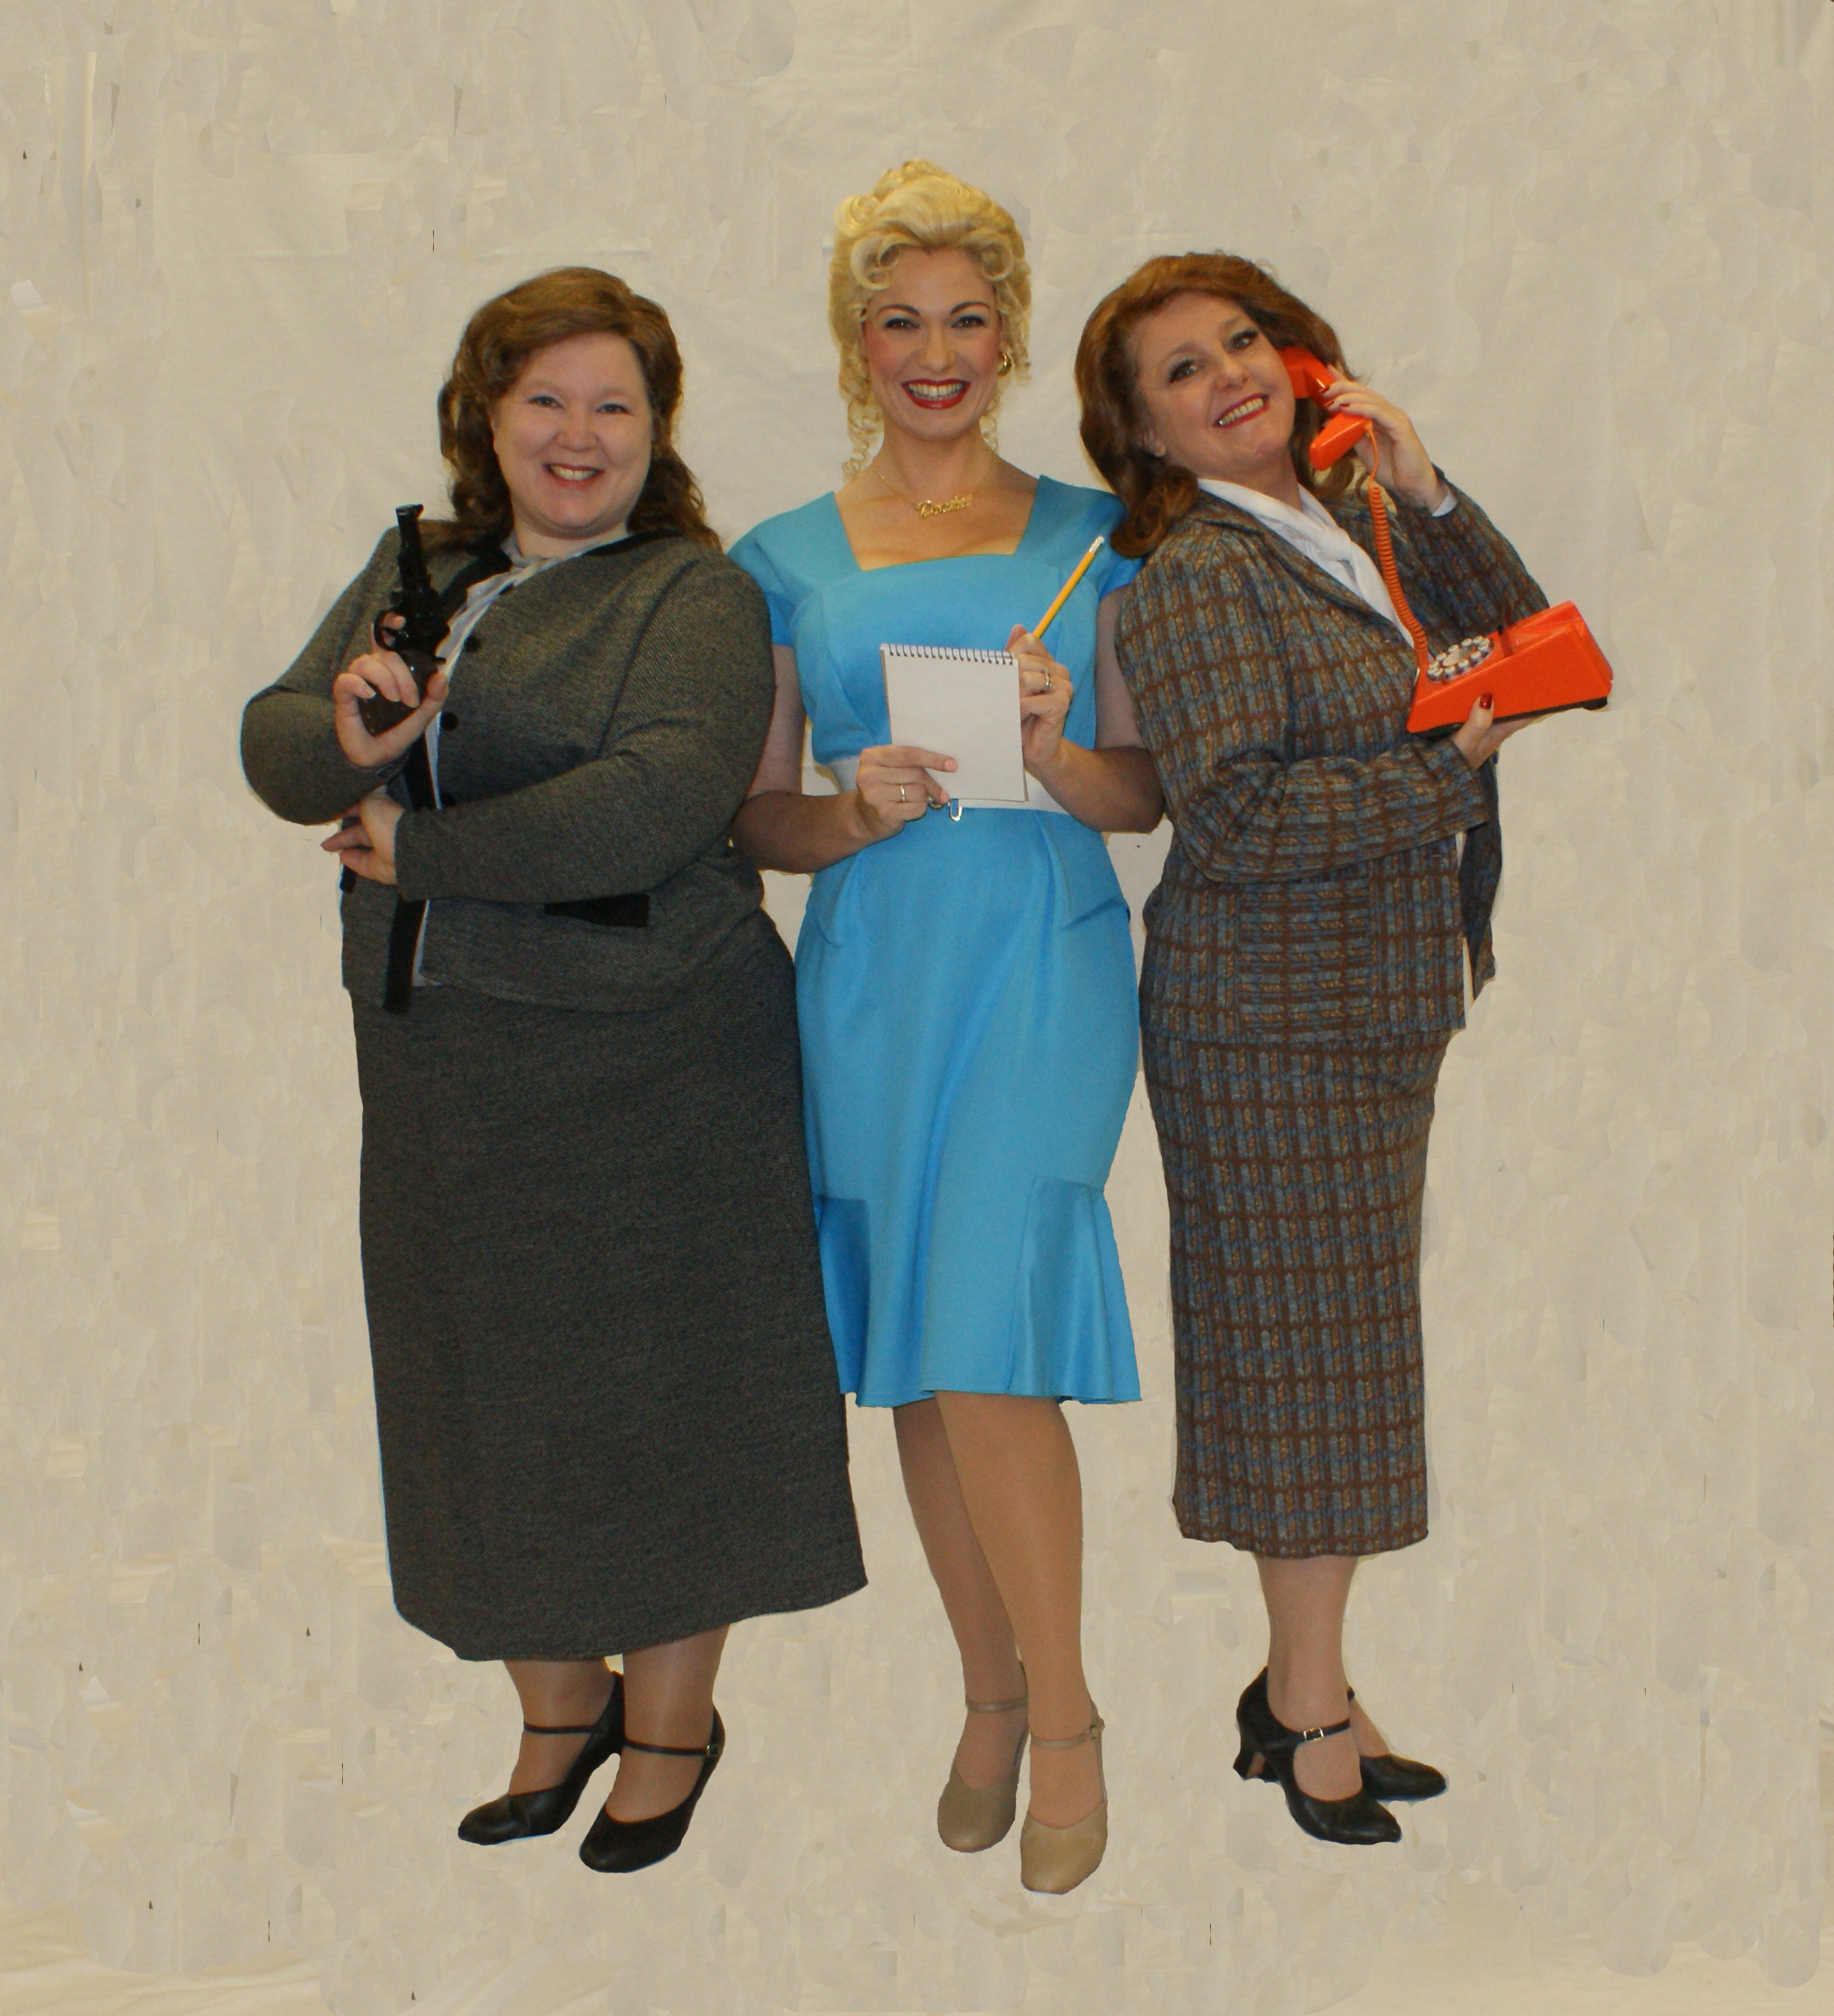 Cradley Heath Amateur Operatic Society will perform Dolly Parton's '9 to 5 – The Musical' at Stourbridge Town Hall between November 14 and November 18.